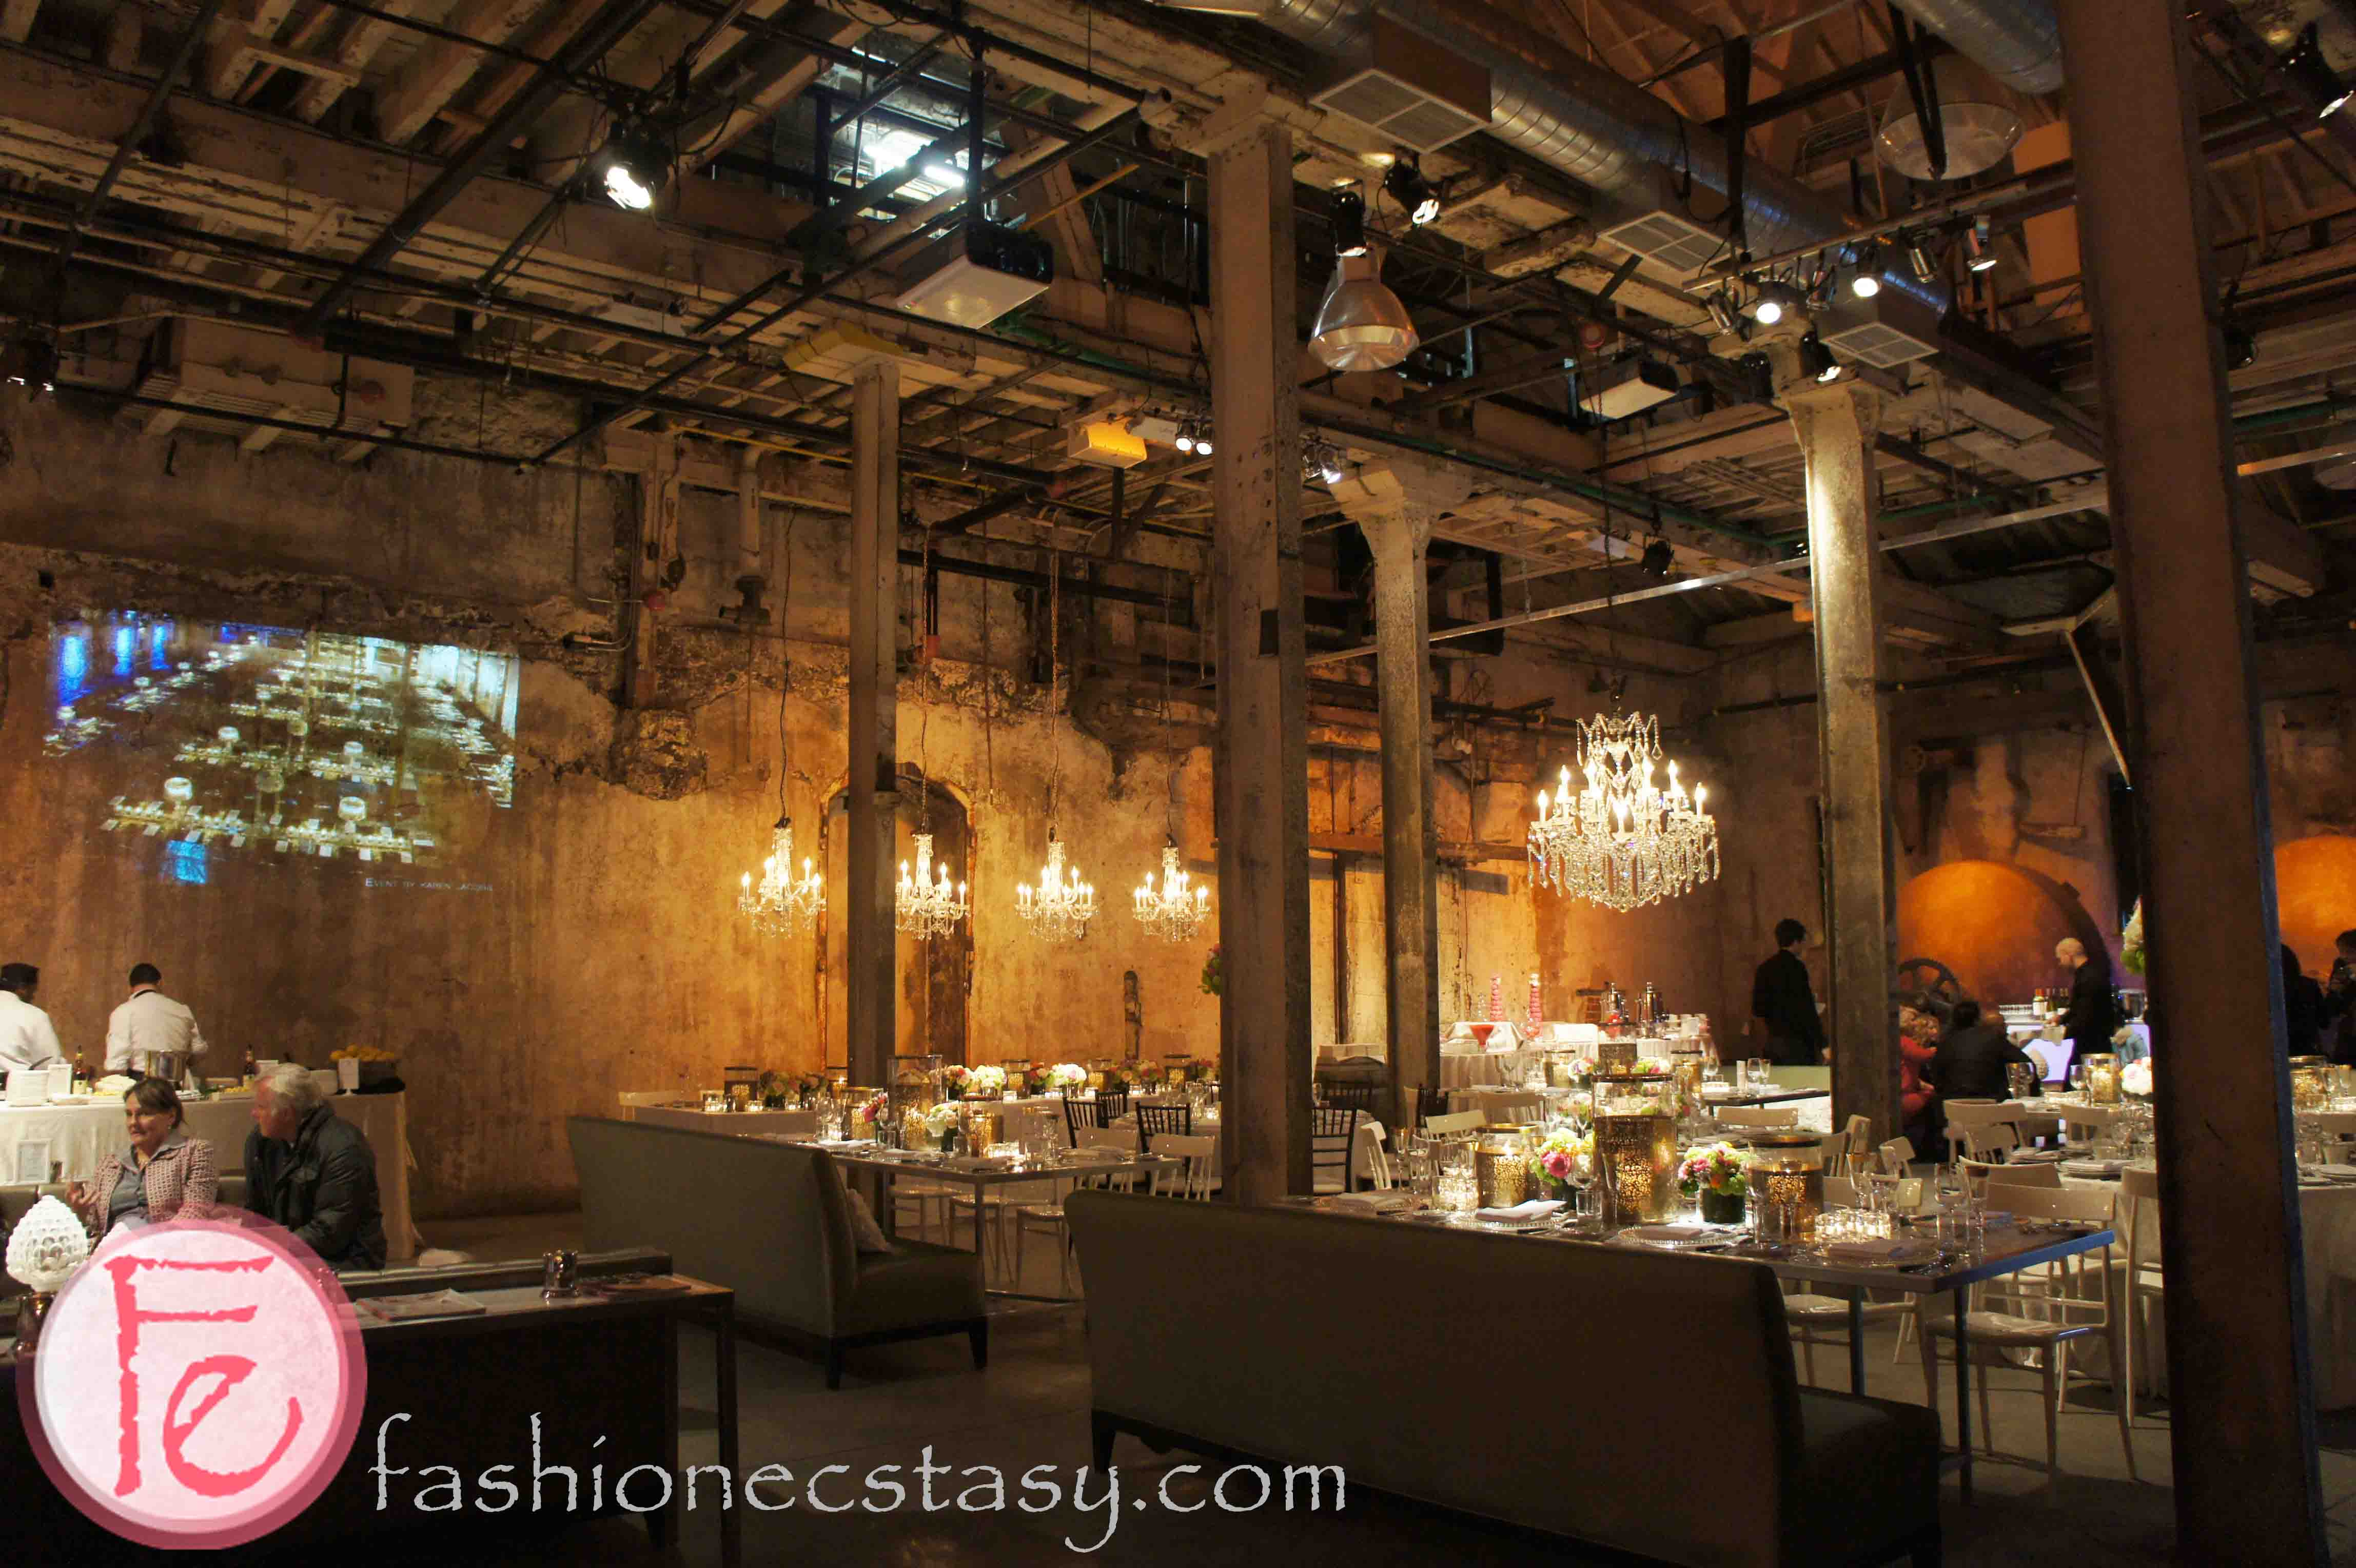 The Fermenting Cellar Distillery Events Wedding Open House & The Fermenting Cellar Wedding Open House - u0027Make Your Event Historic ...